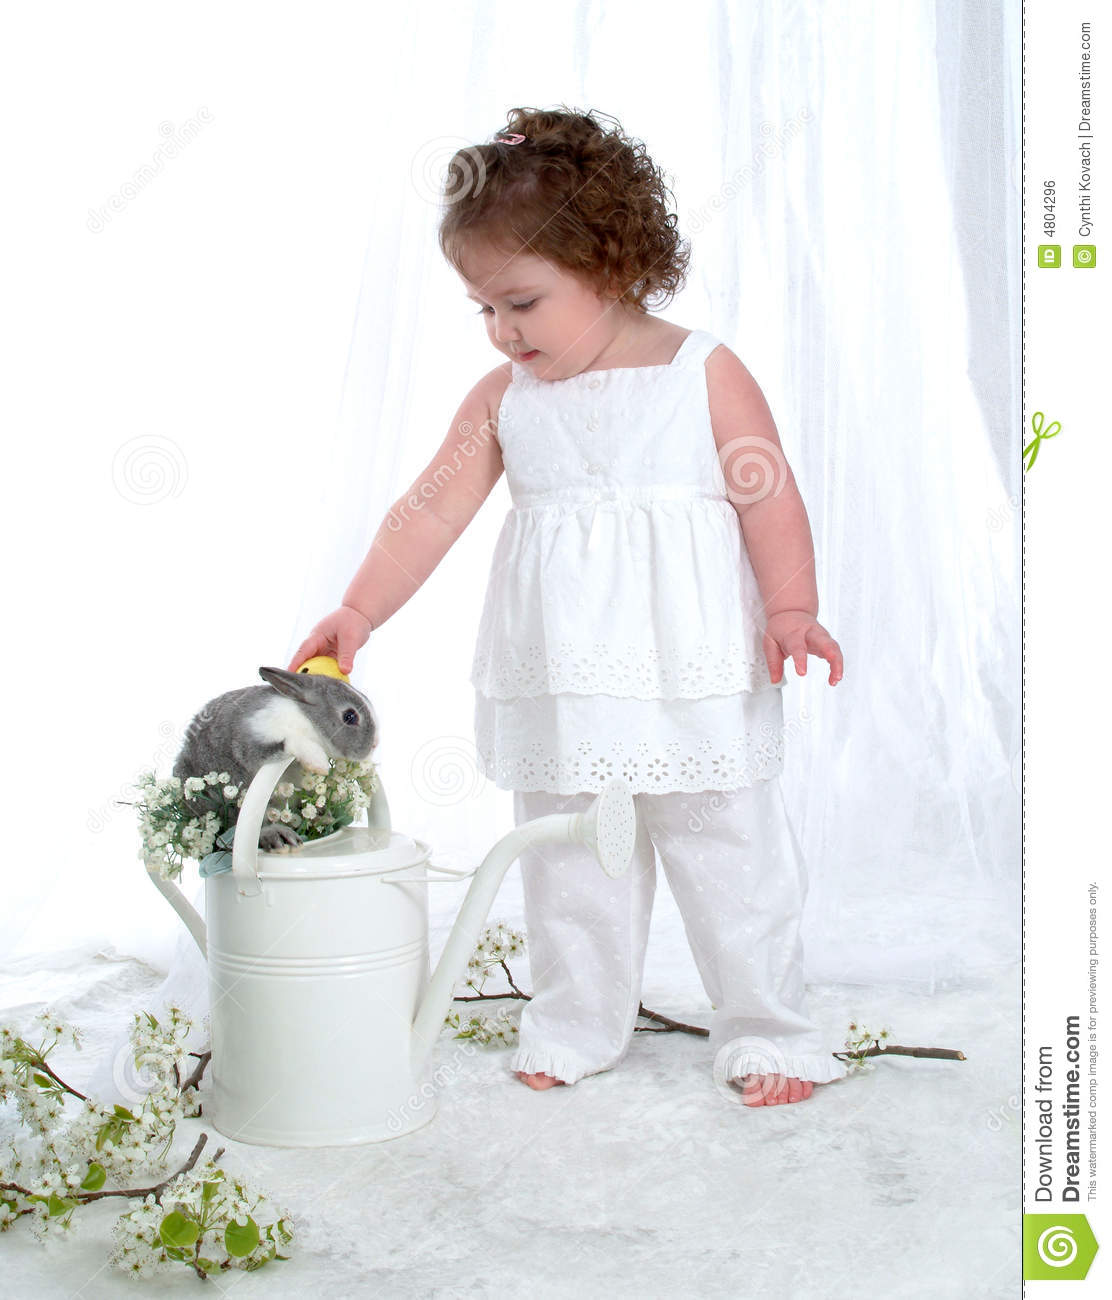 Watering Can Bunny and Girl